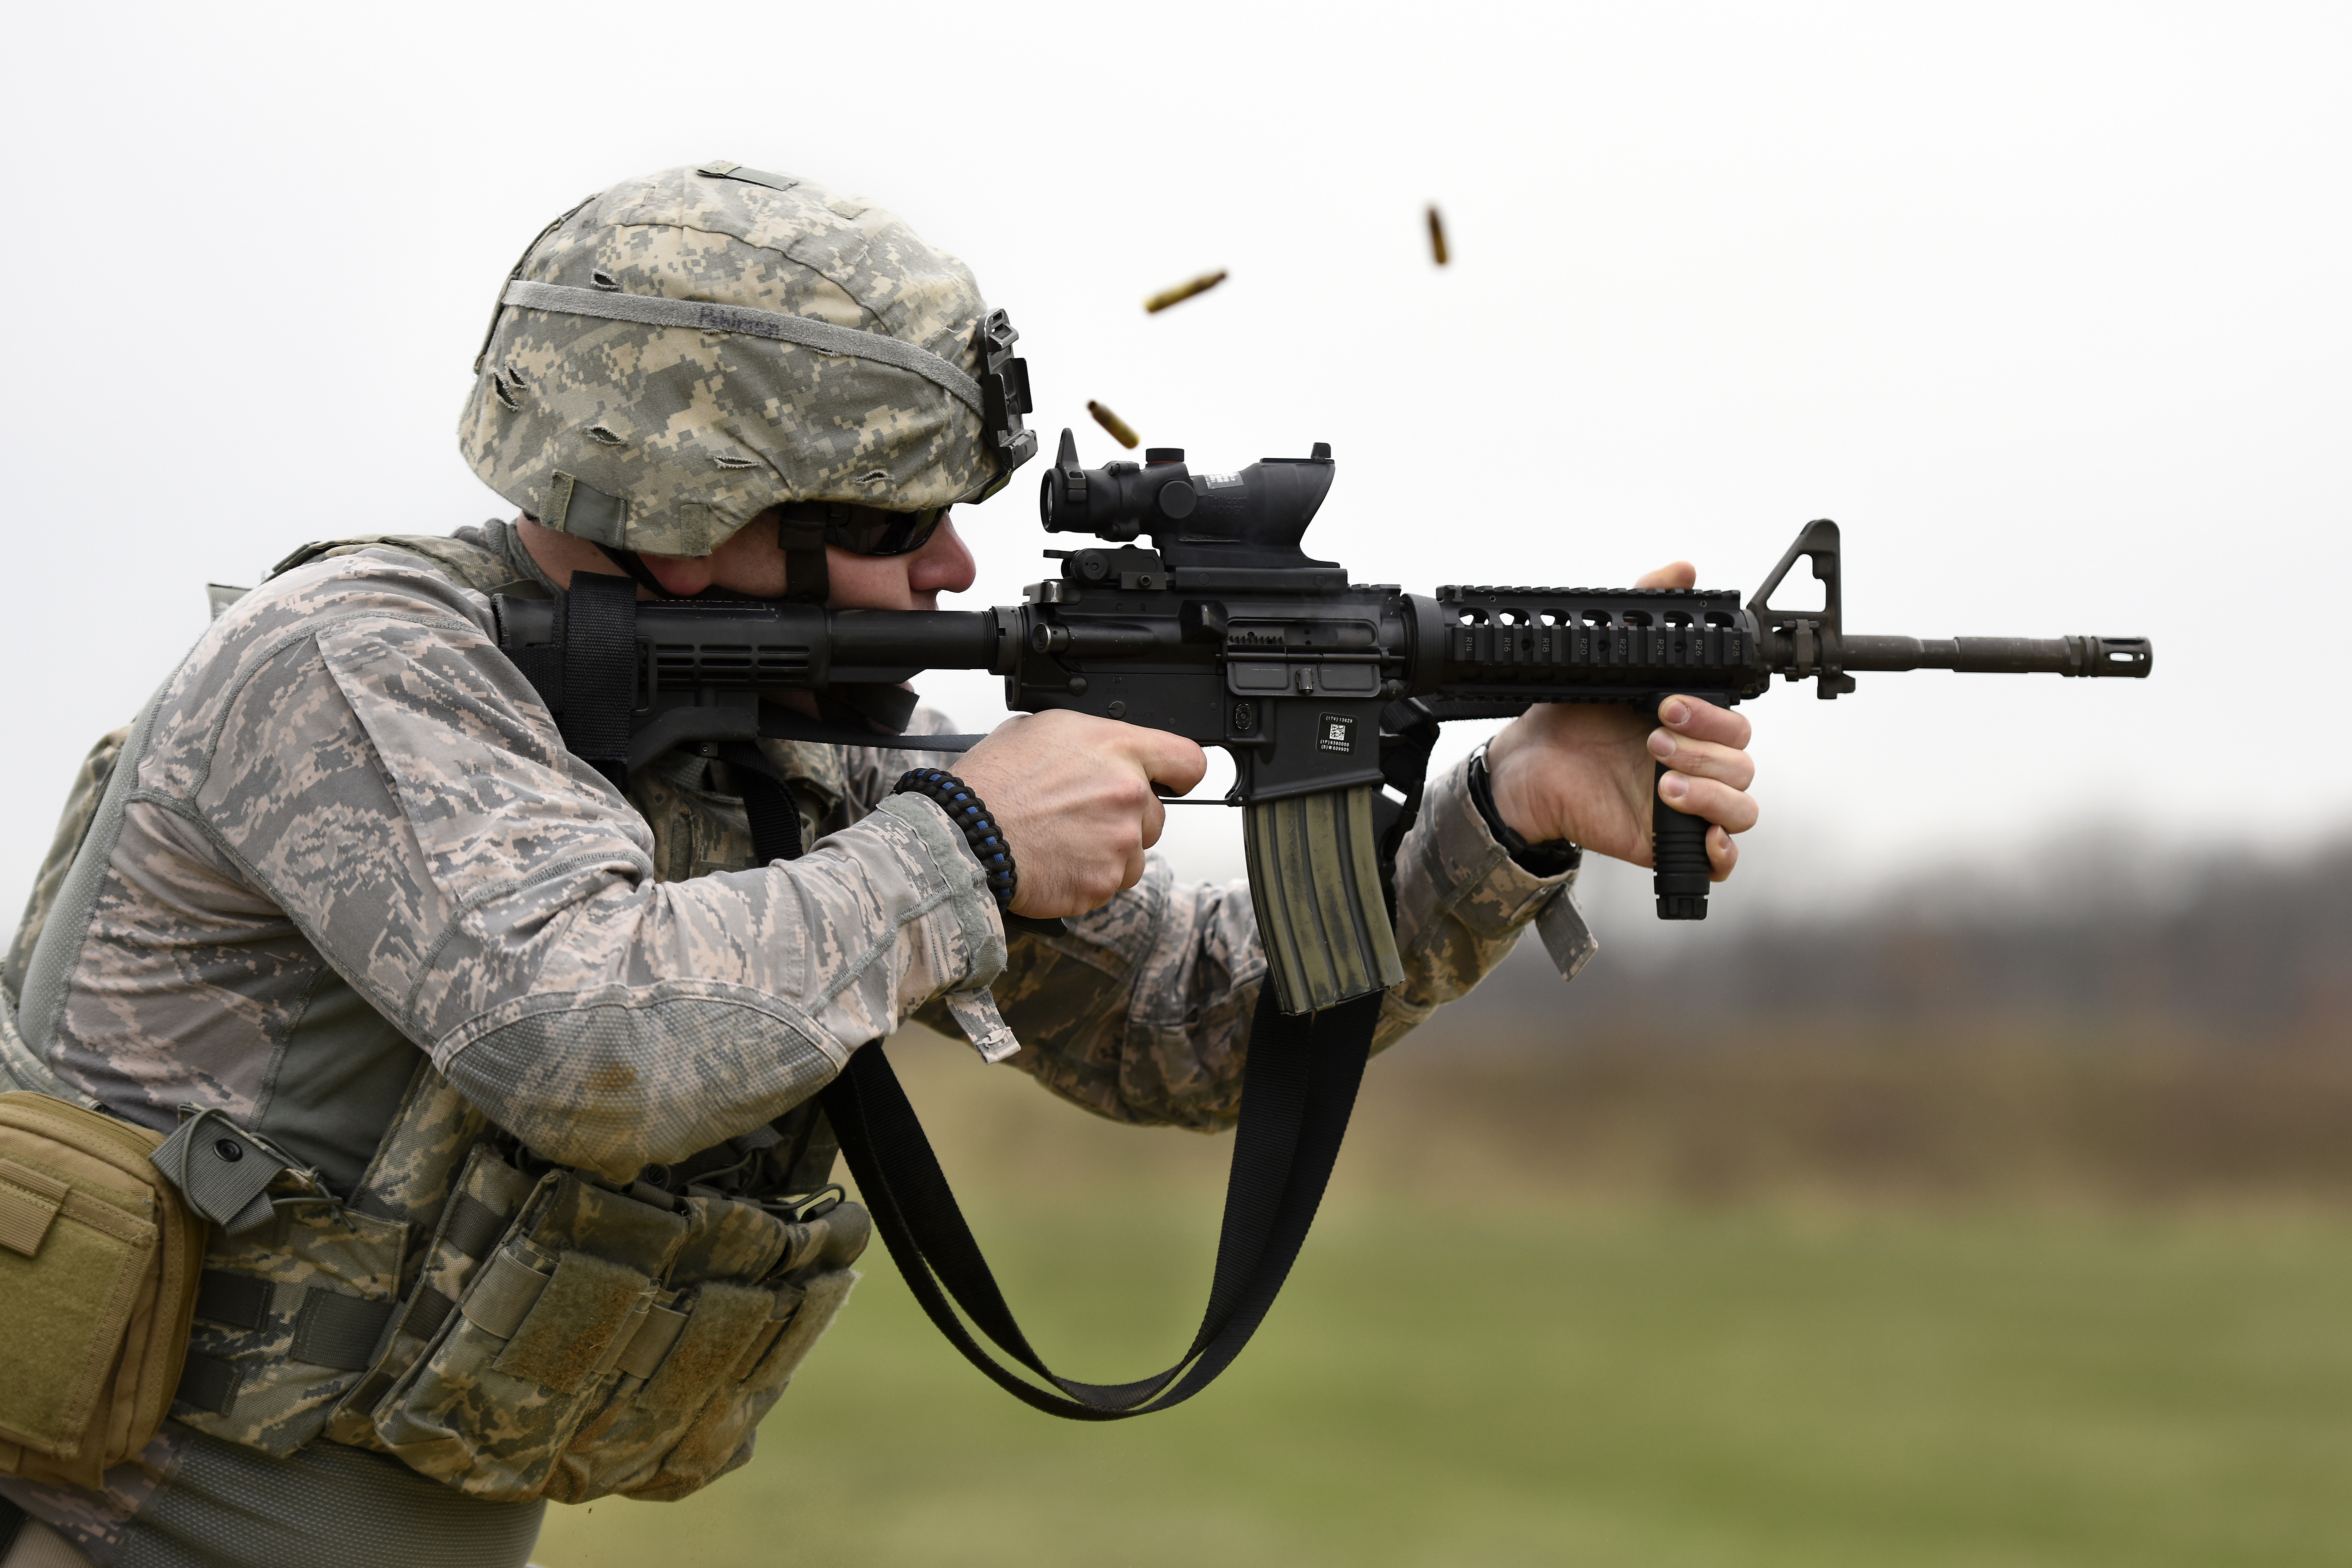 file senior airman benton pohlman fires an m4 carbine rifle